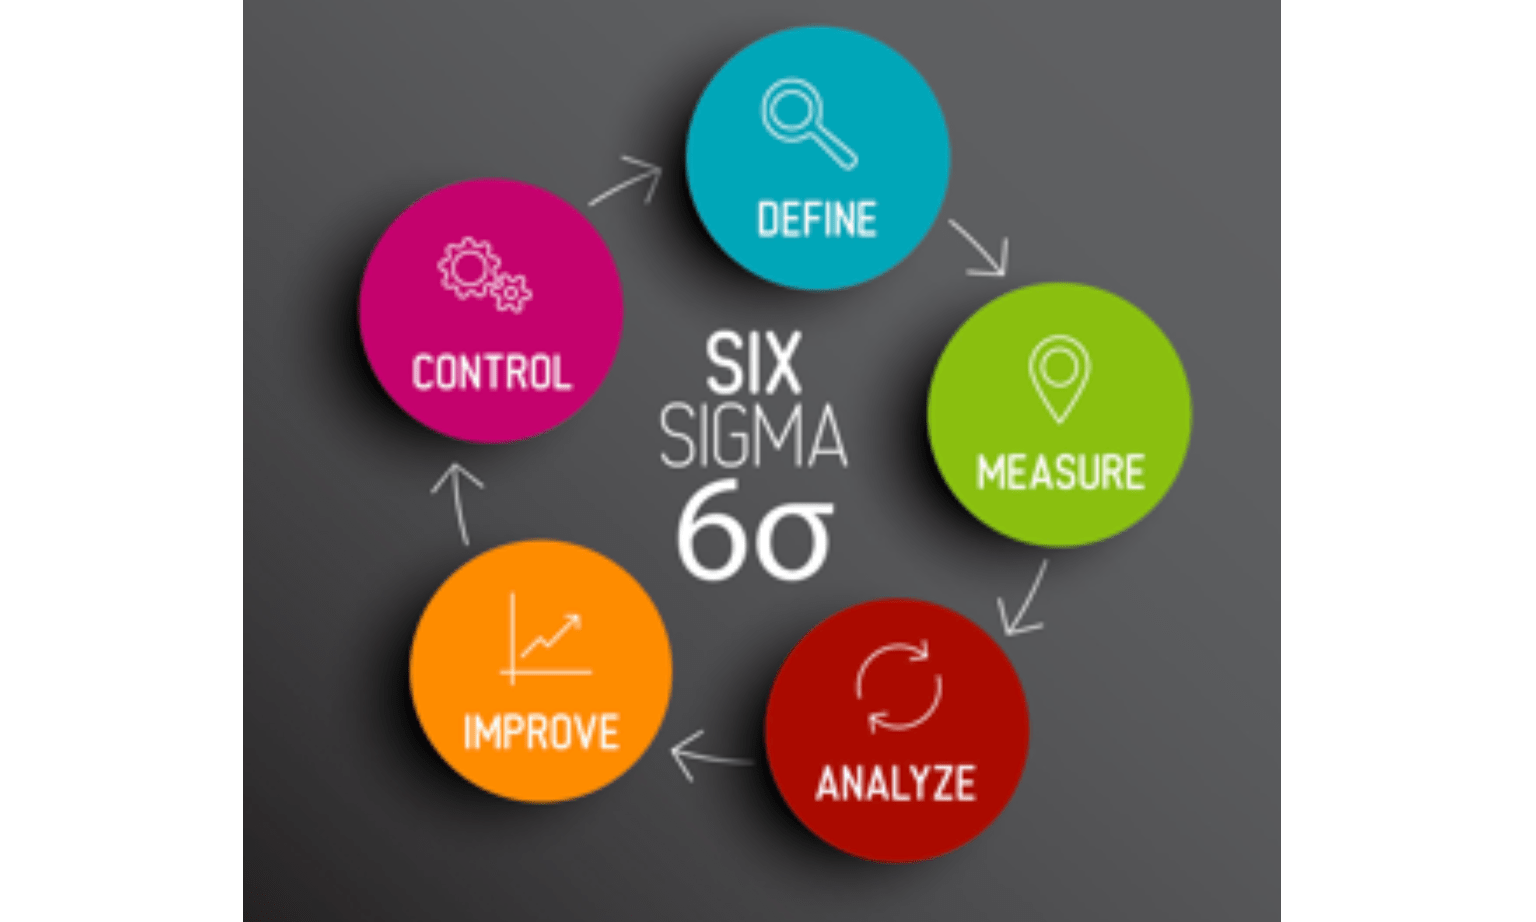 Failure Modes And Effectsysis In Six Sigma